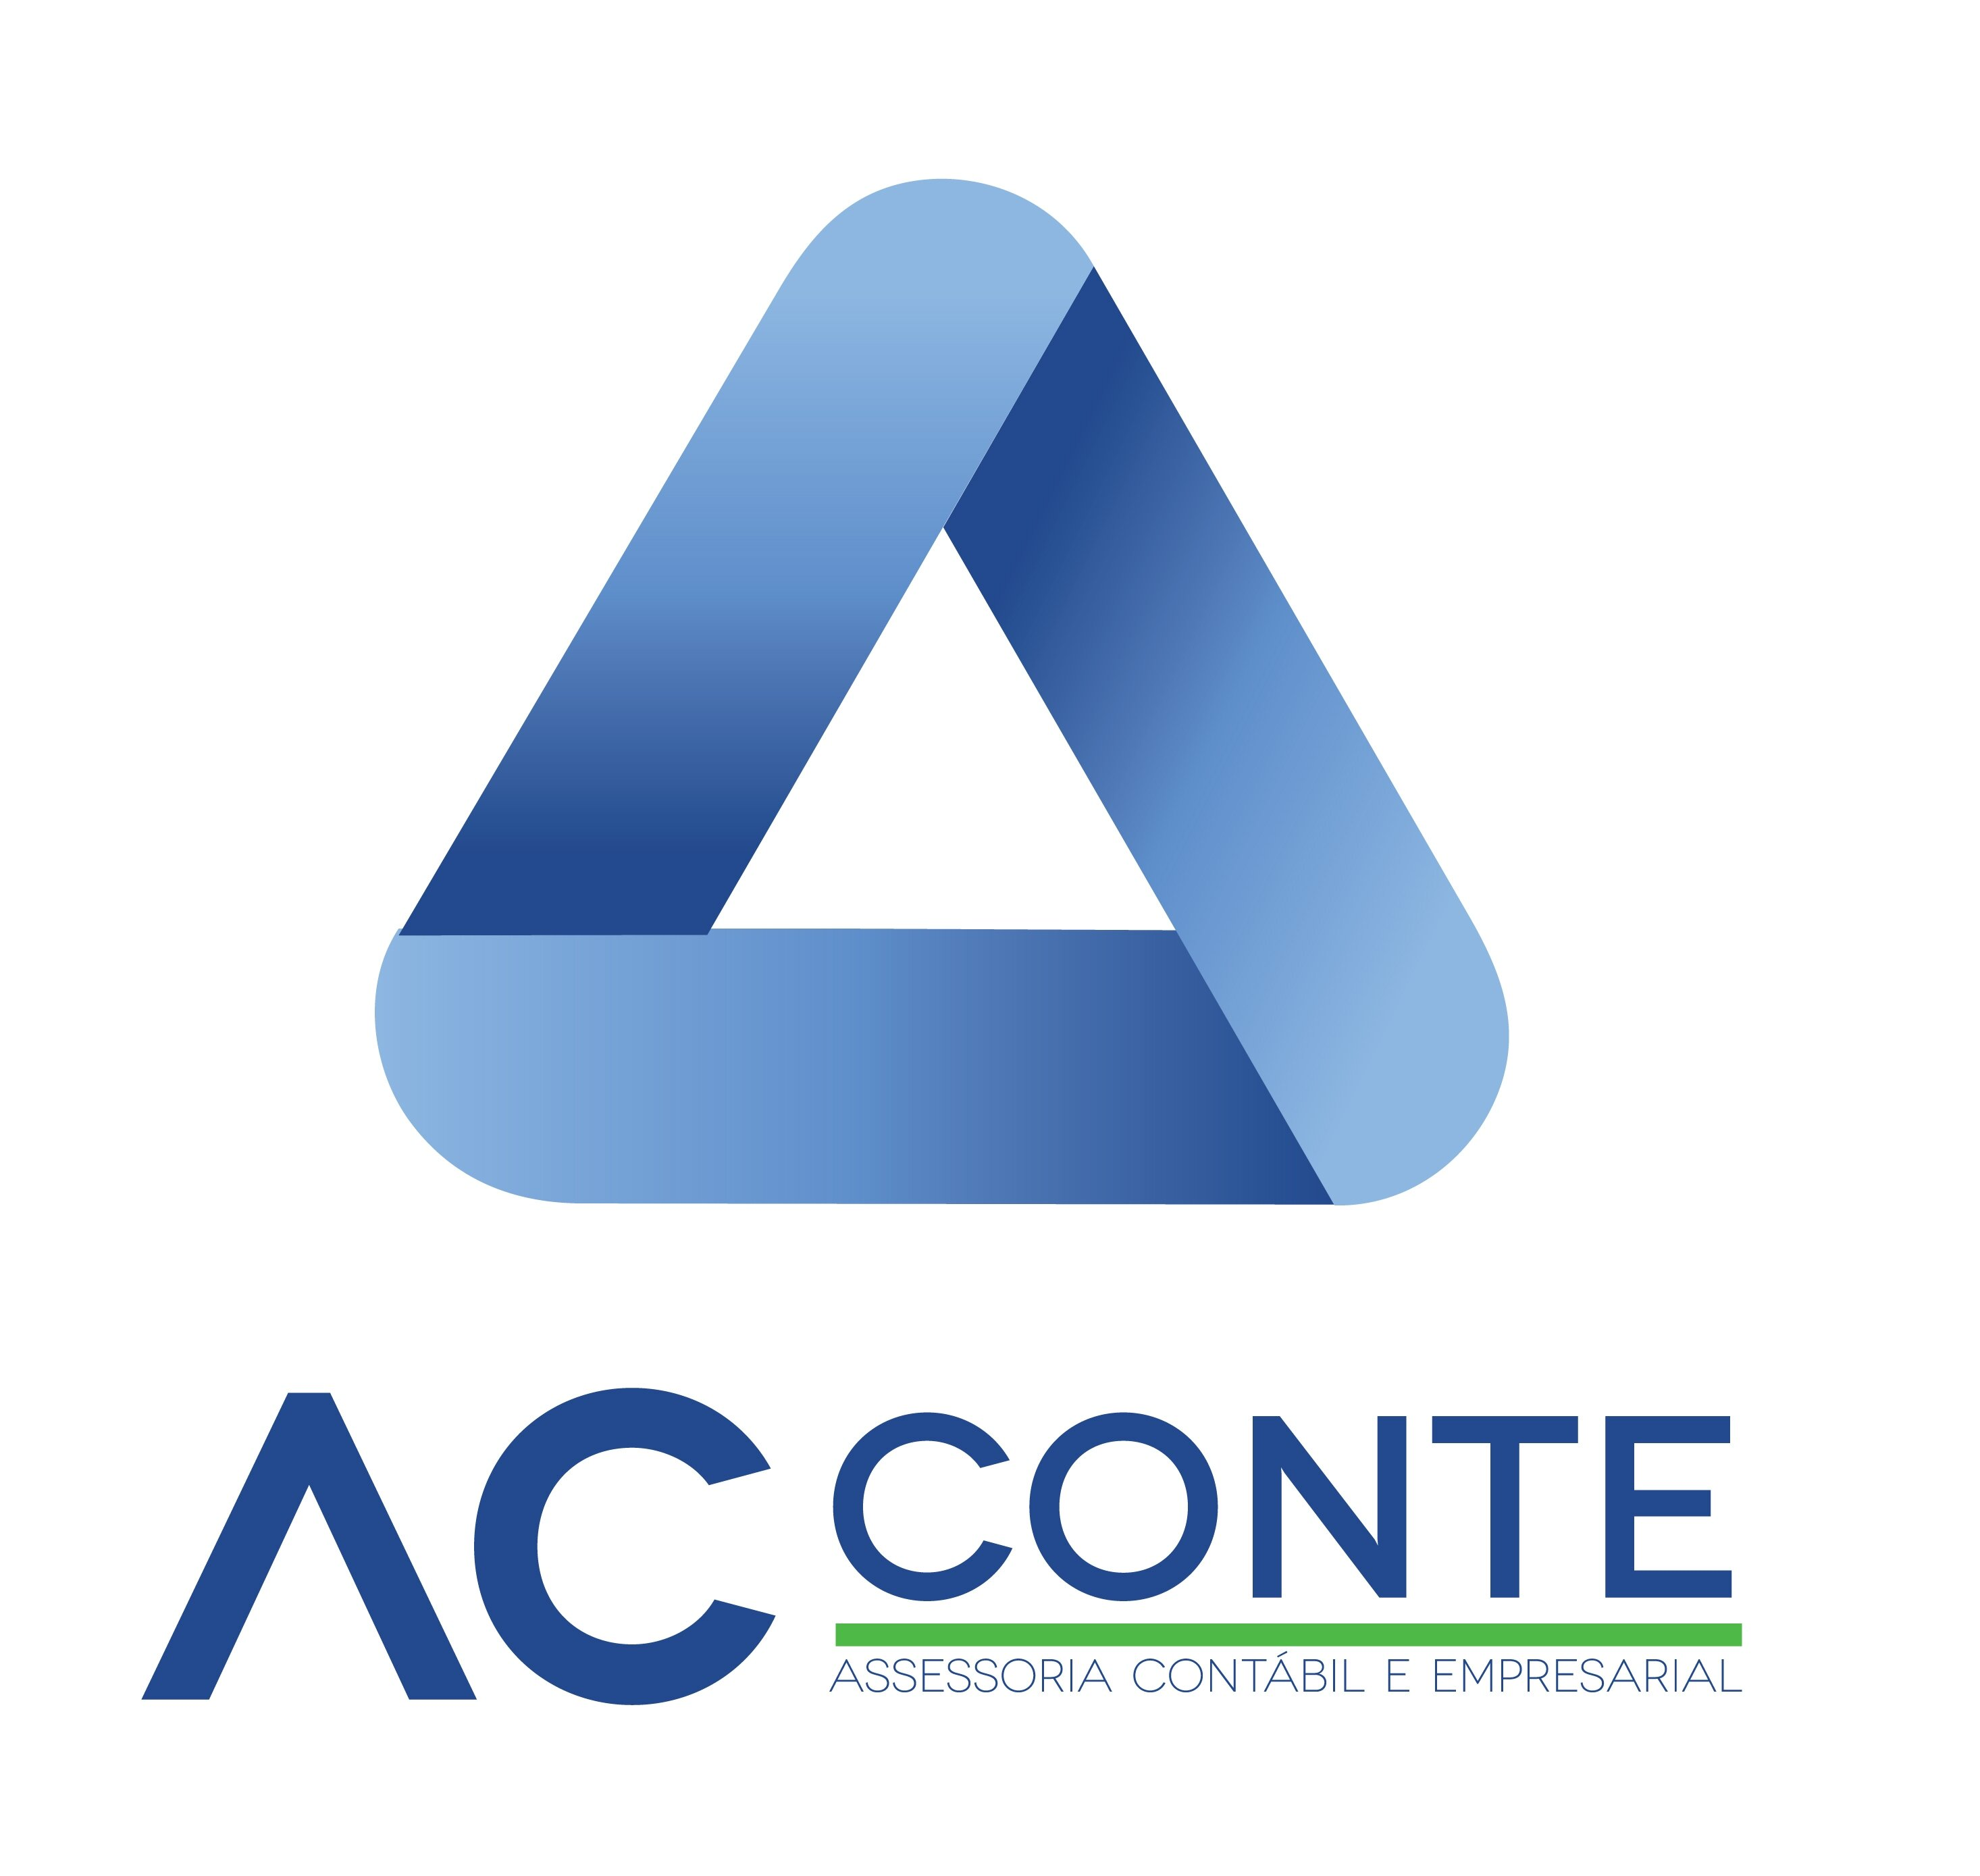 Ac Conte (@AcconteAc) | Twitter